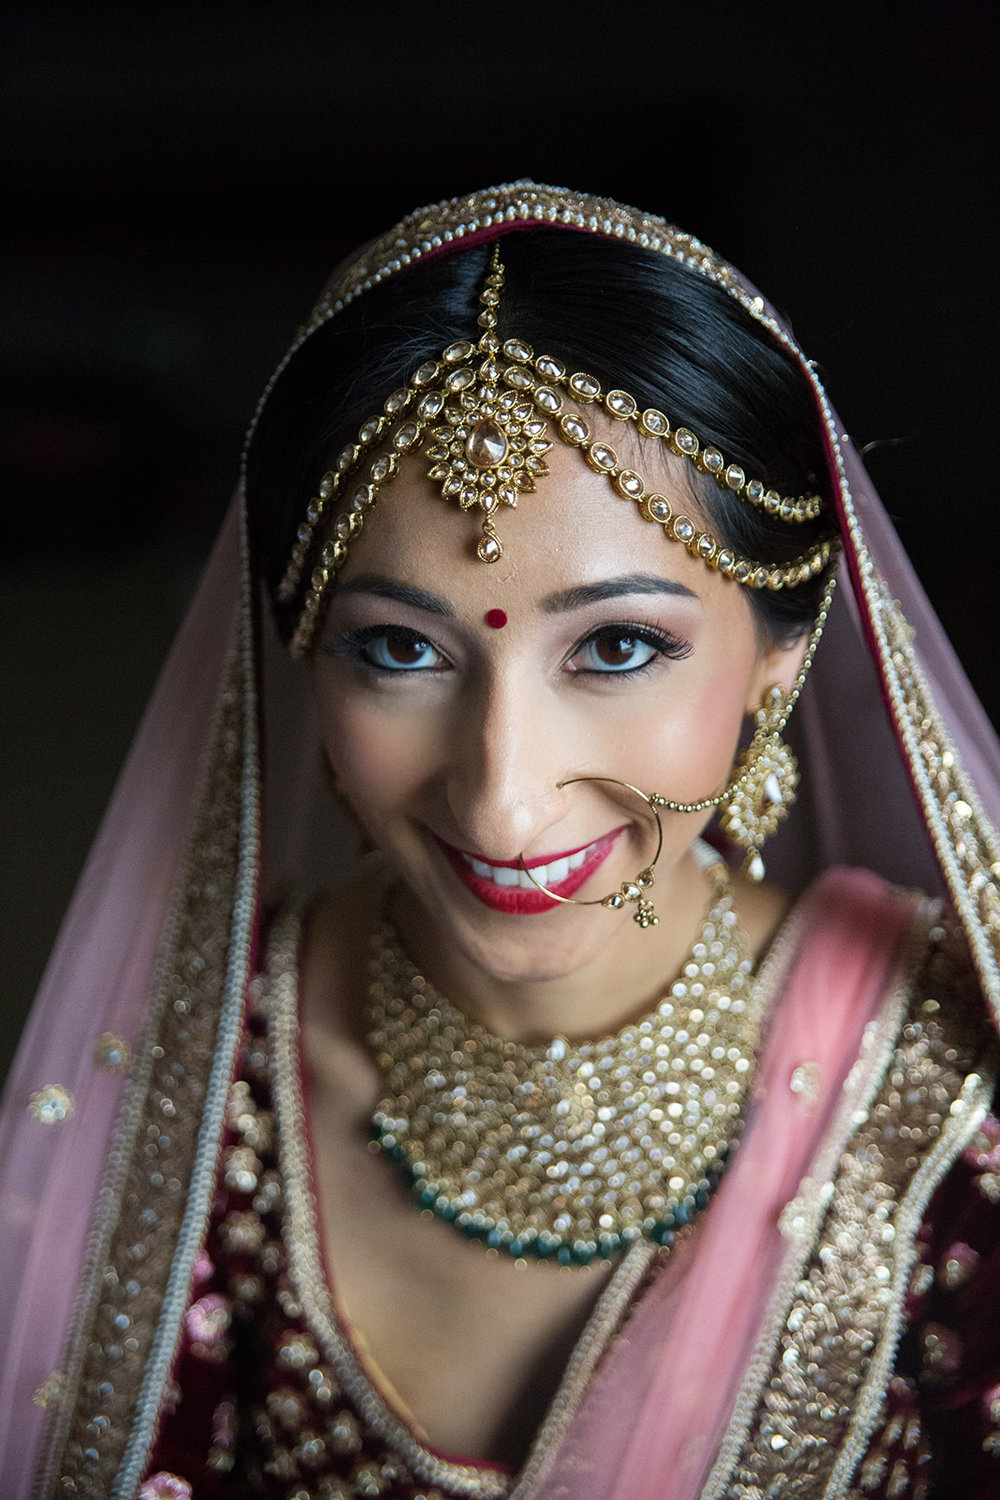 Le Cape Weddings - Puja and Kheelan - Getting Ready Bride -91.jpg